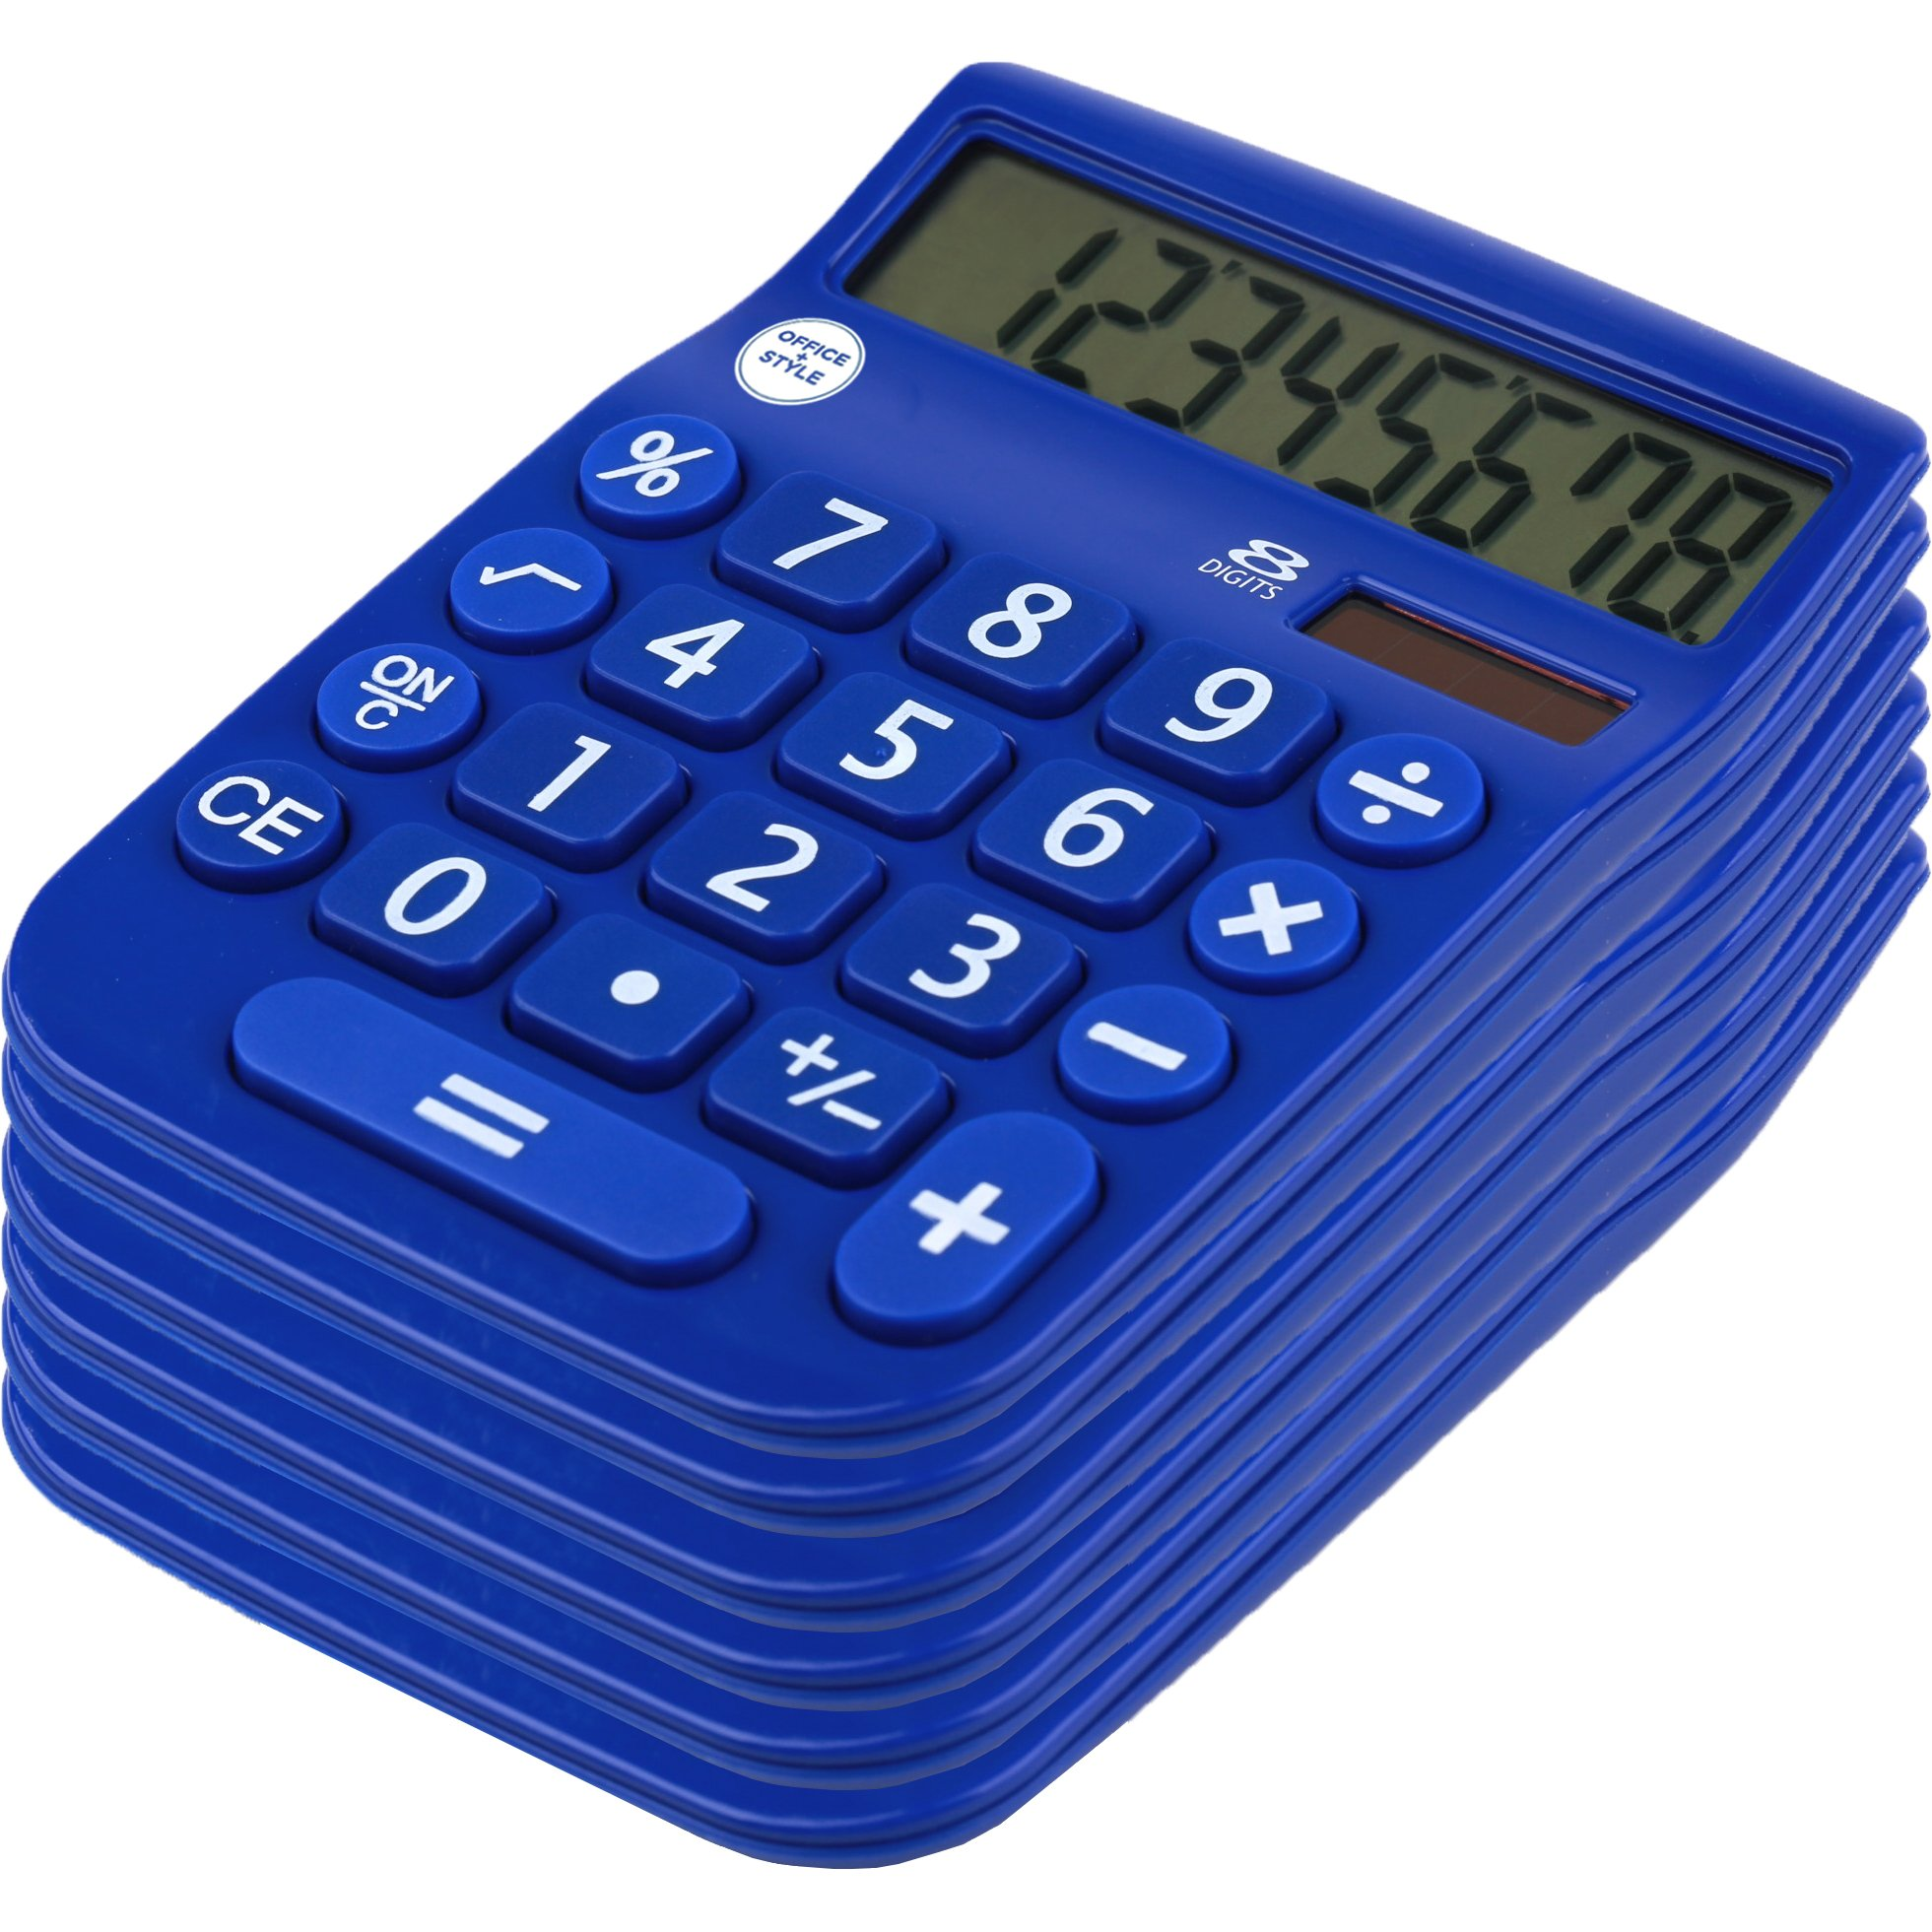 Office + Style 8 Digit Dual Powered Calculator with Large LCD Display, Blue (Pack of 6) by Office Style (Image #7)